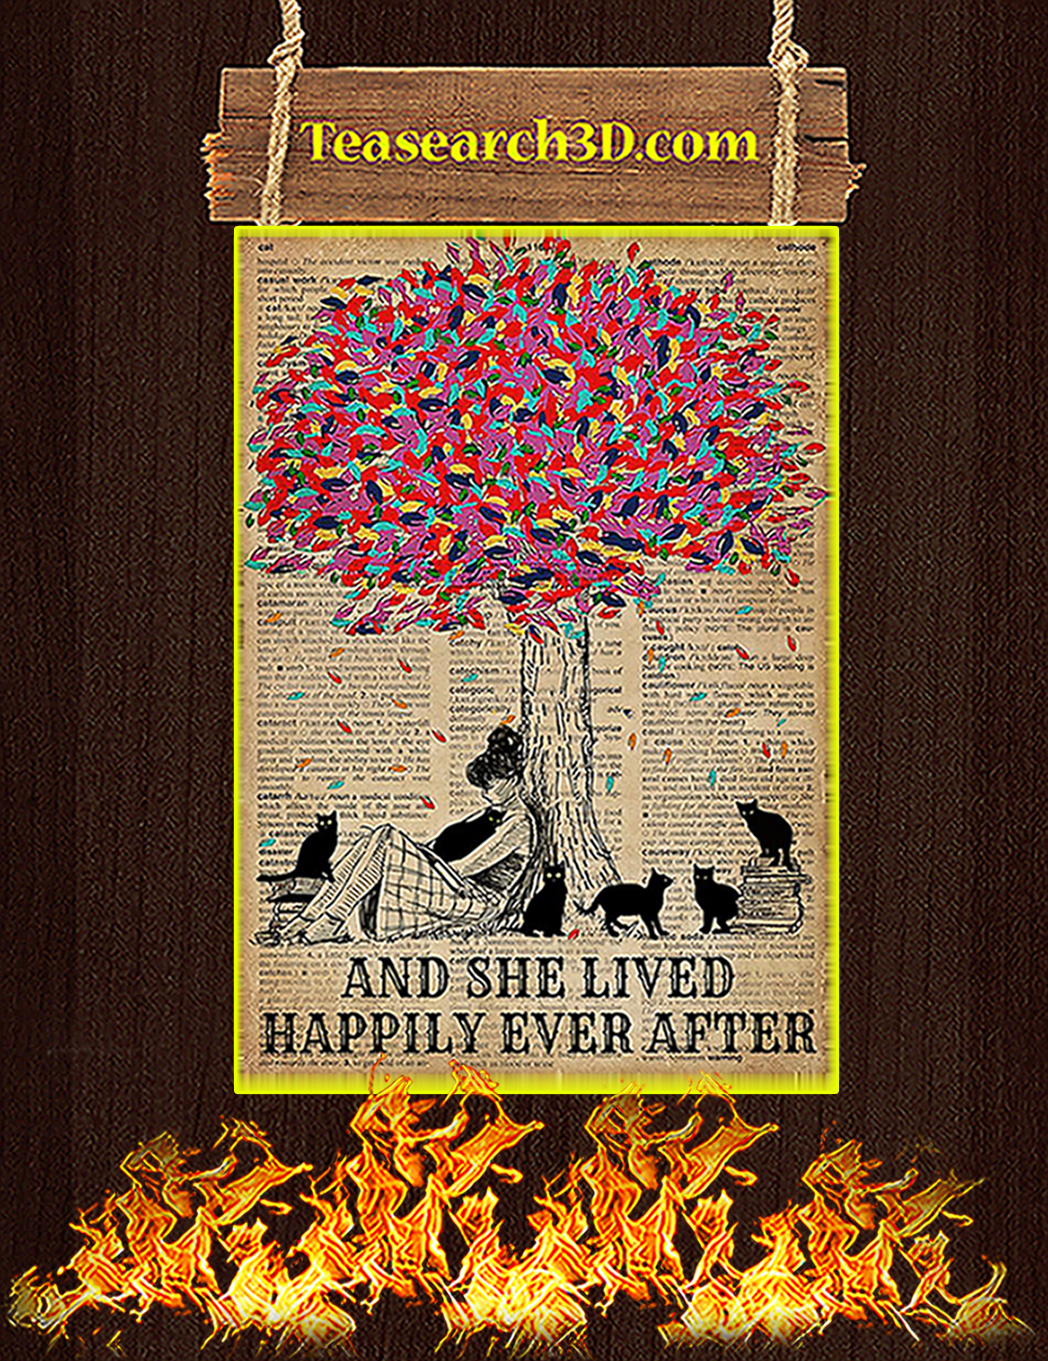 Trees Black cats And she lived happily ever after poster A1